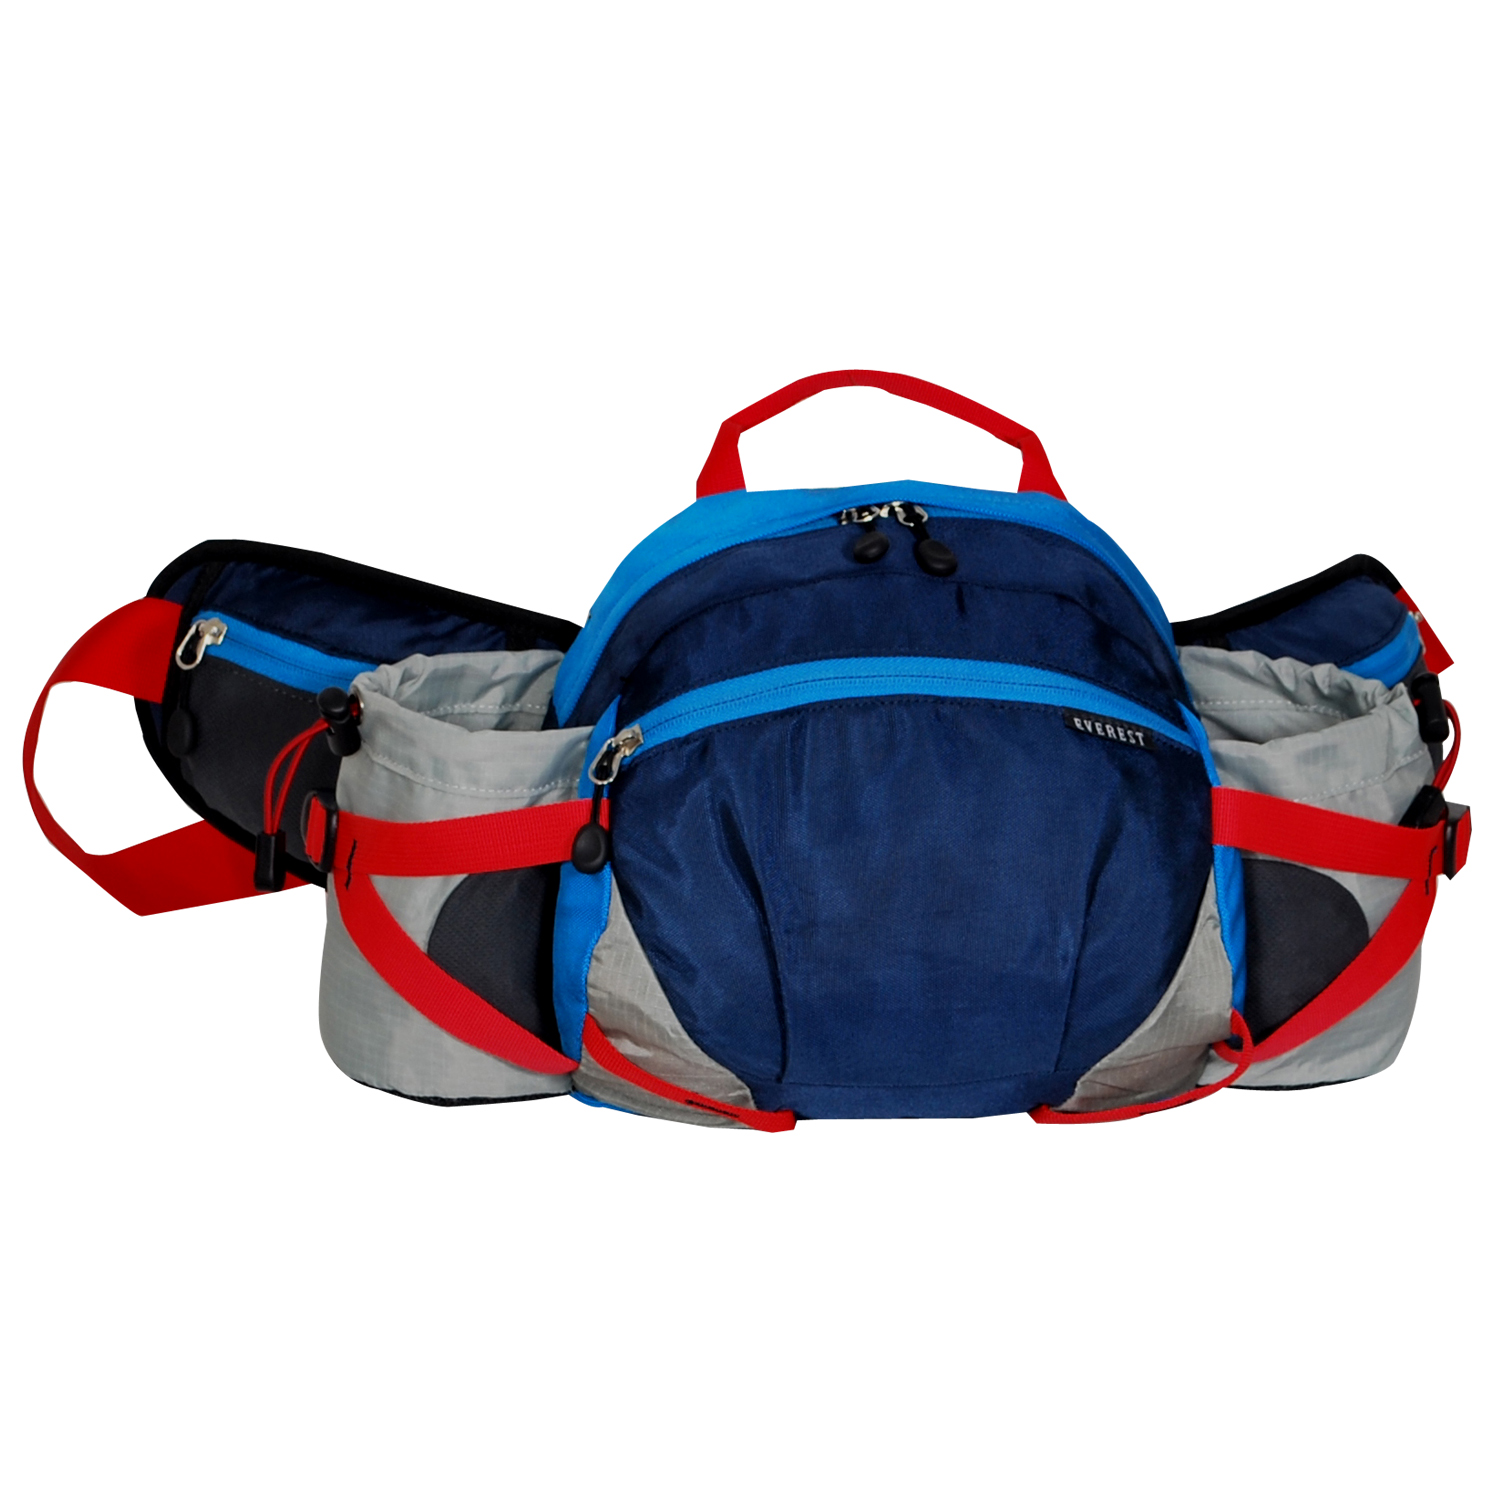 Everest Outdoor Waist Pack w/Bottle Holders